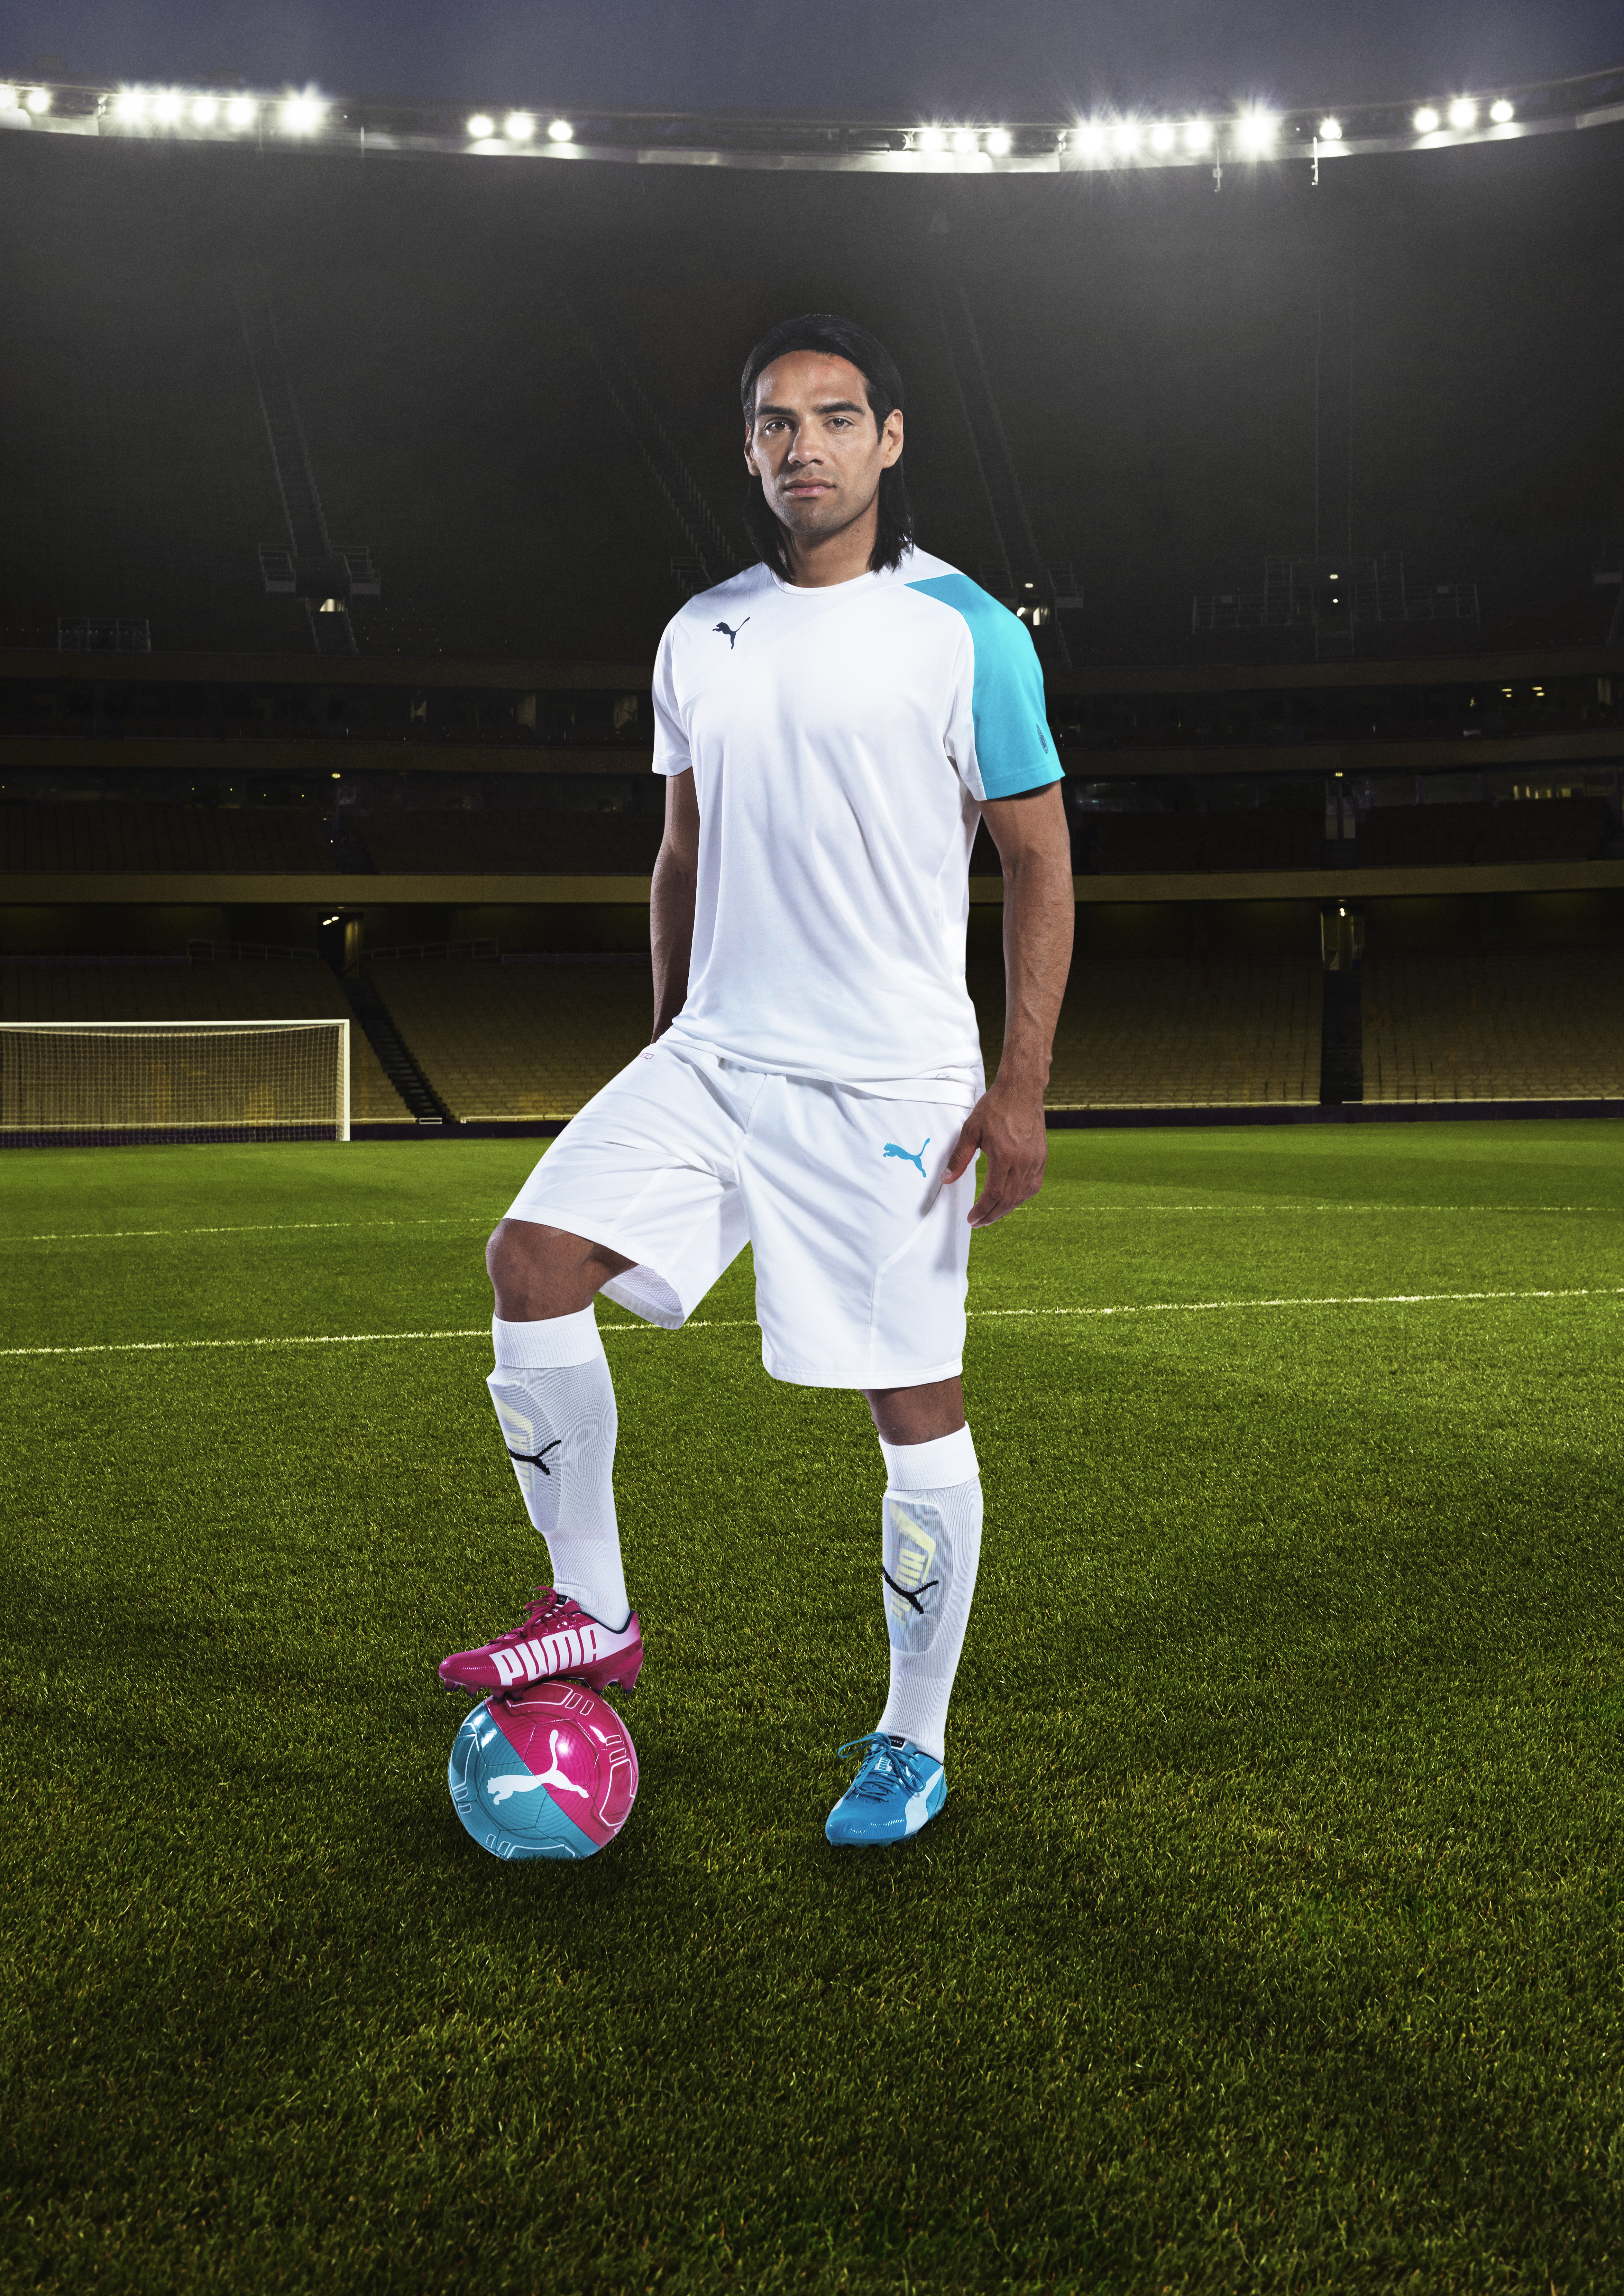 Falcao's recovery was spurred by his self belief. In Brazil he will wear the PUMA evoSPEED Tricks boot